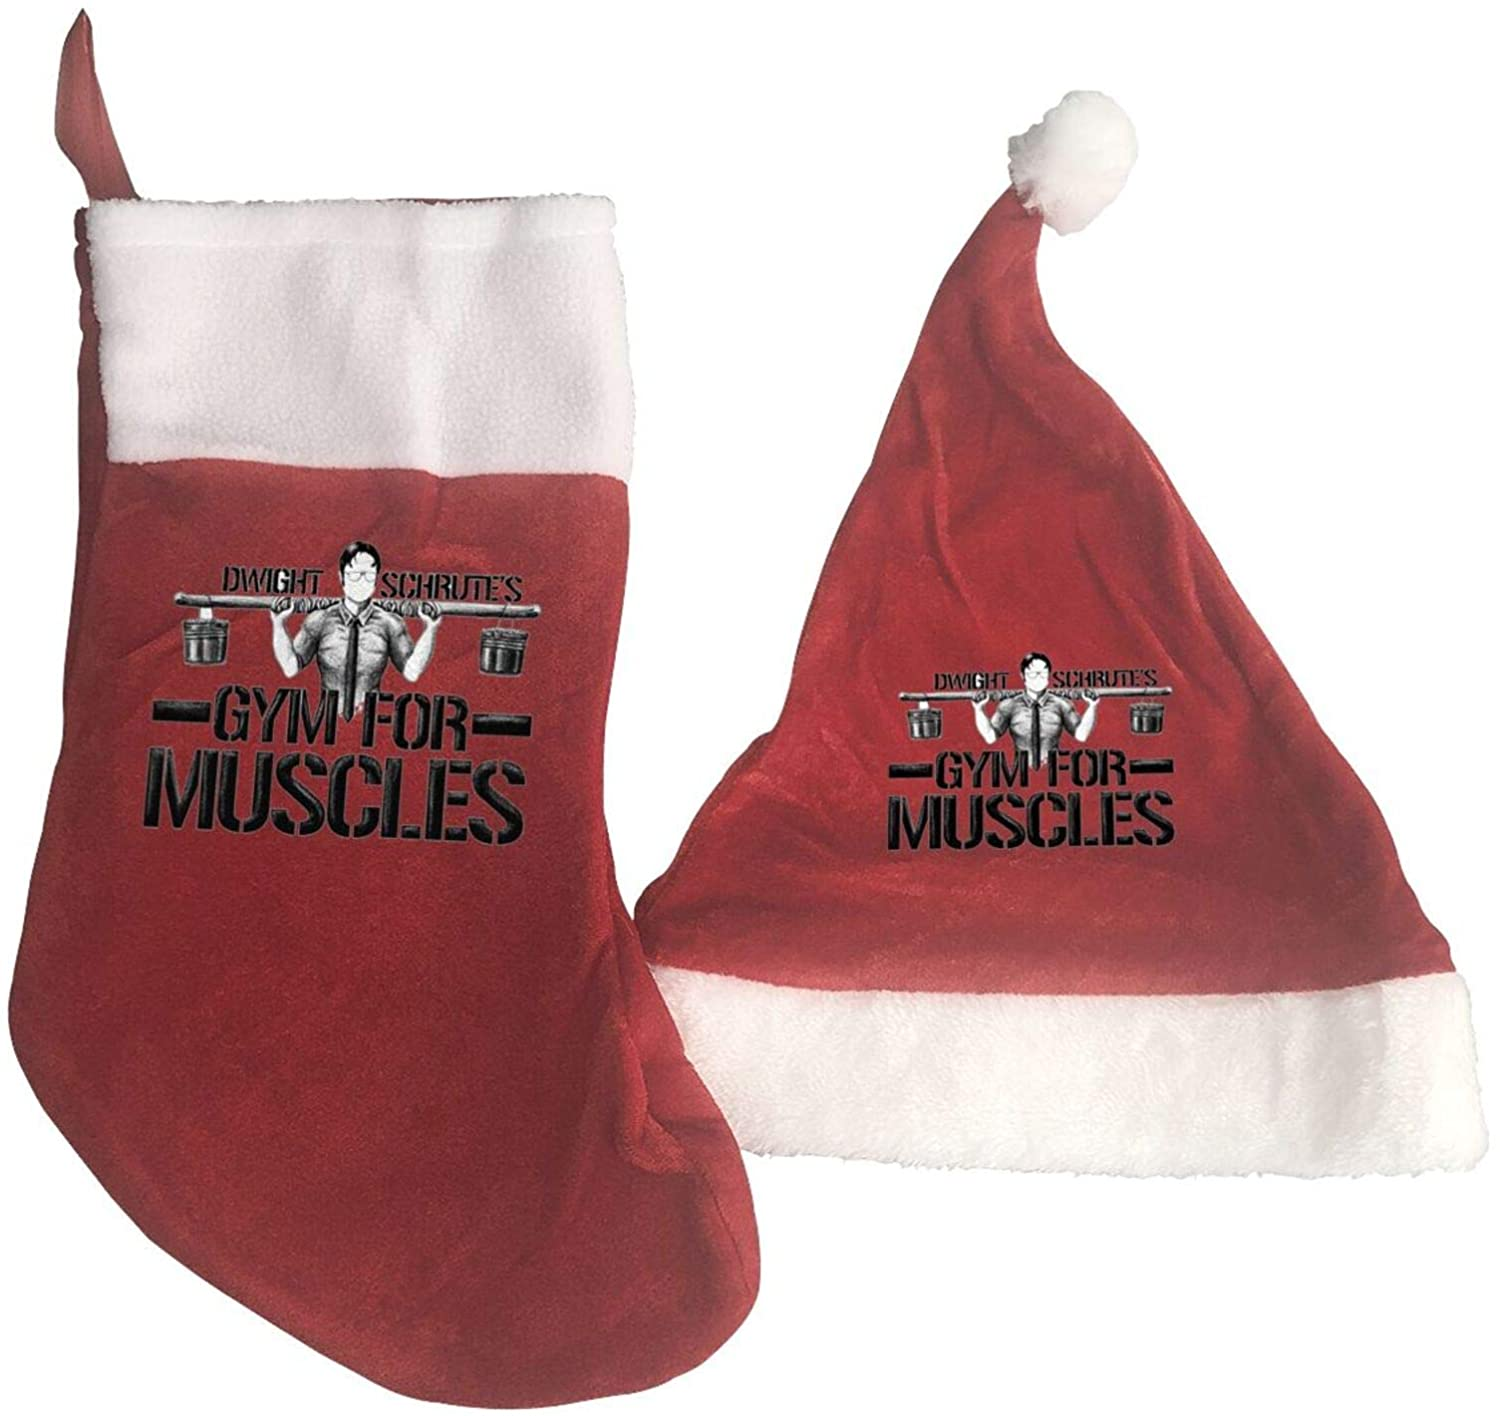 Dwight Schrute Gym For Muscles Christmas Hat Christmas Stocking Ornaments And Family Holiday